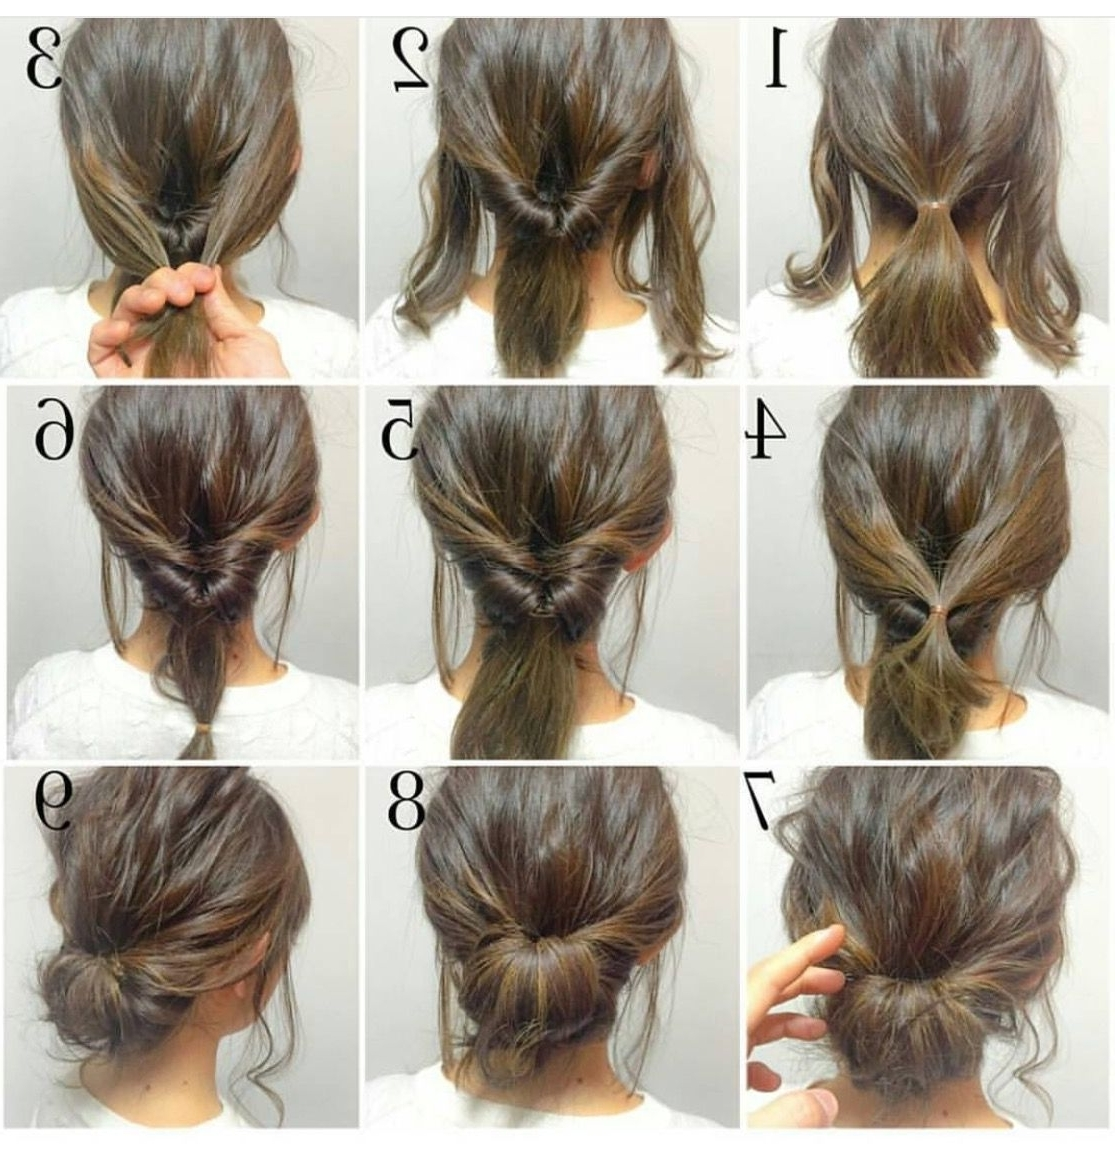 4 Messy Updos For Long Hair | Hairz | Pinterest | Updos, Hair Style With Easy Updo Hairstyles For Long Hair (View 7 of 15)